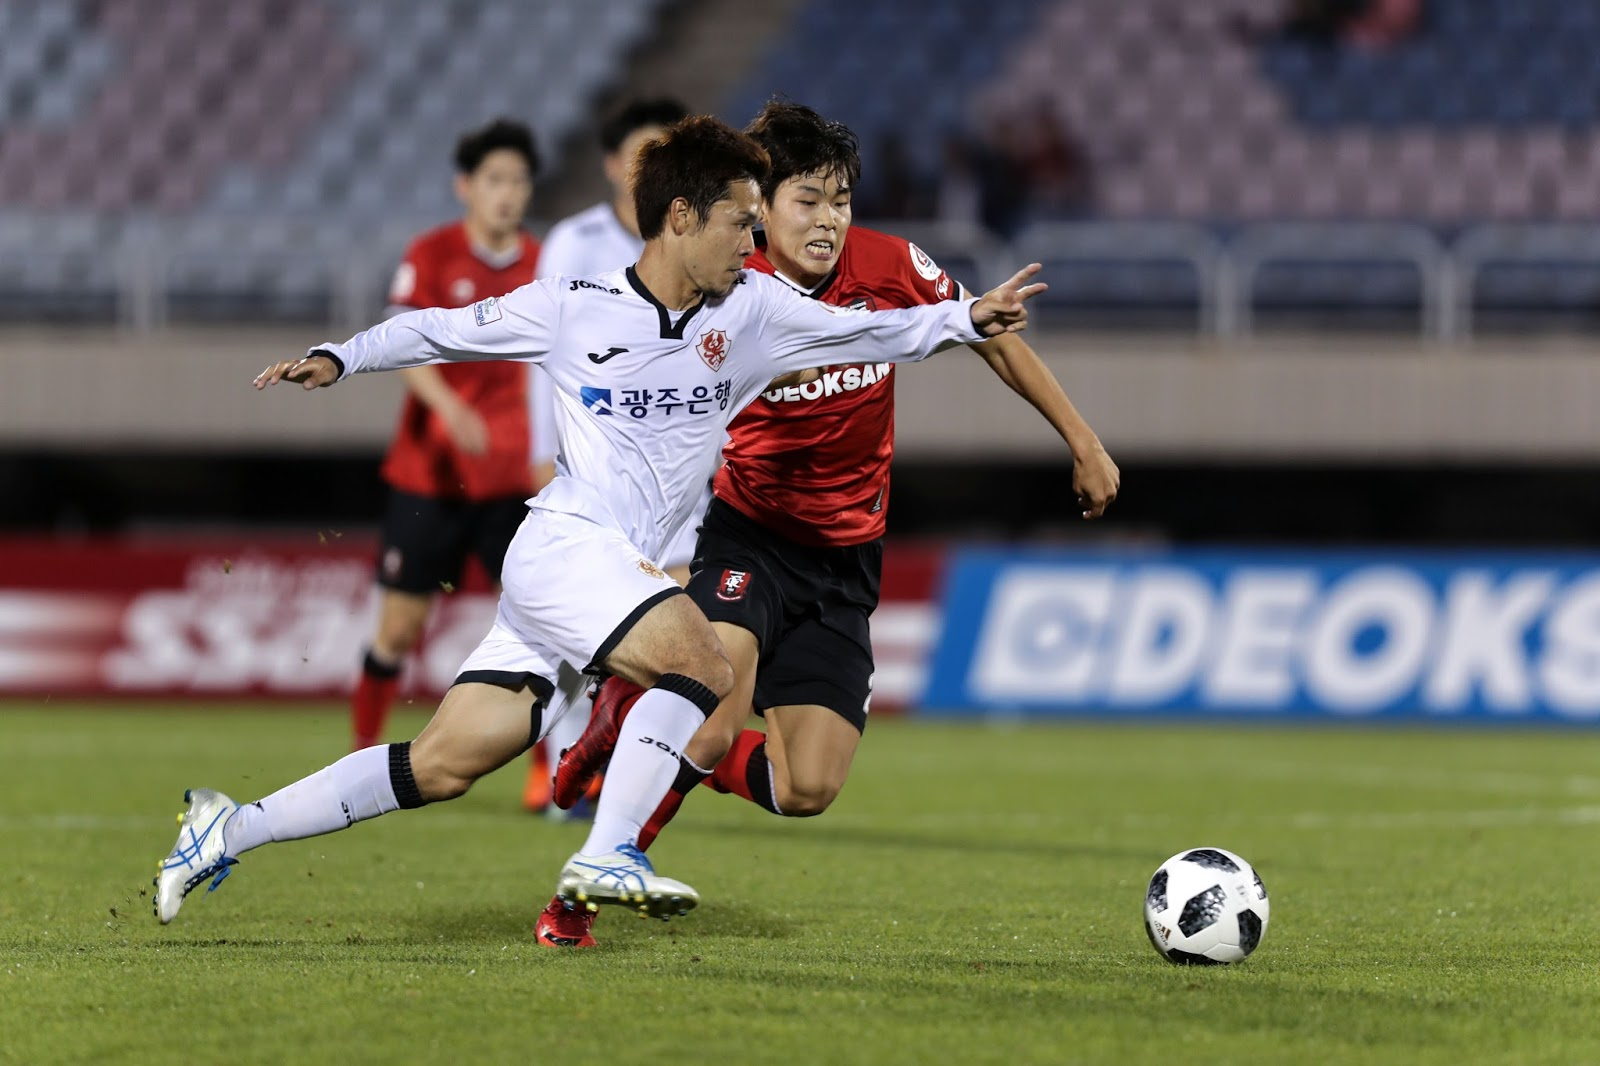 Preview: Gwangju FC Vs Seongnam FC K League 2 Round 11